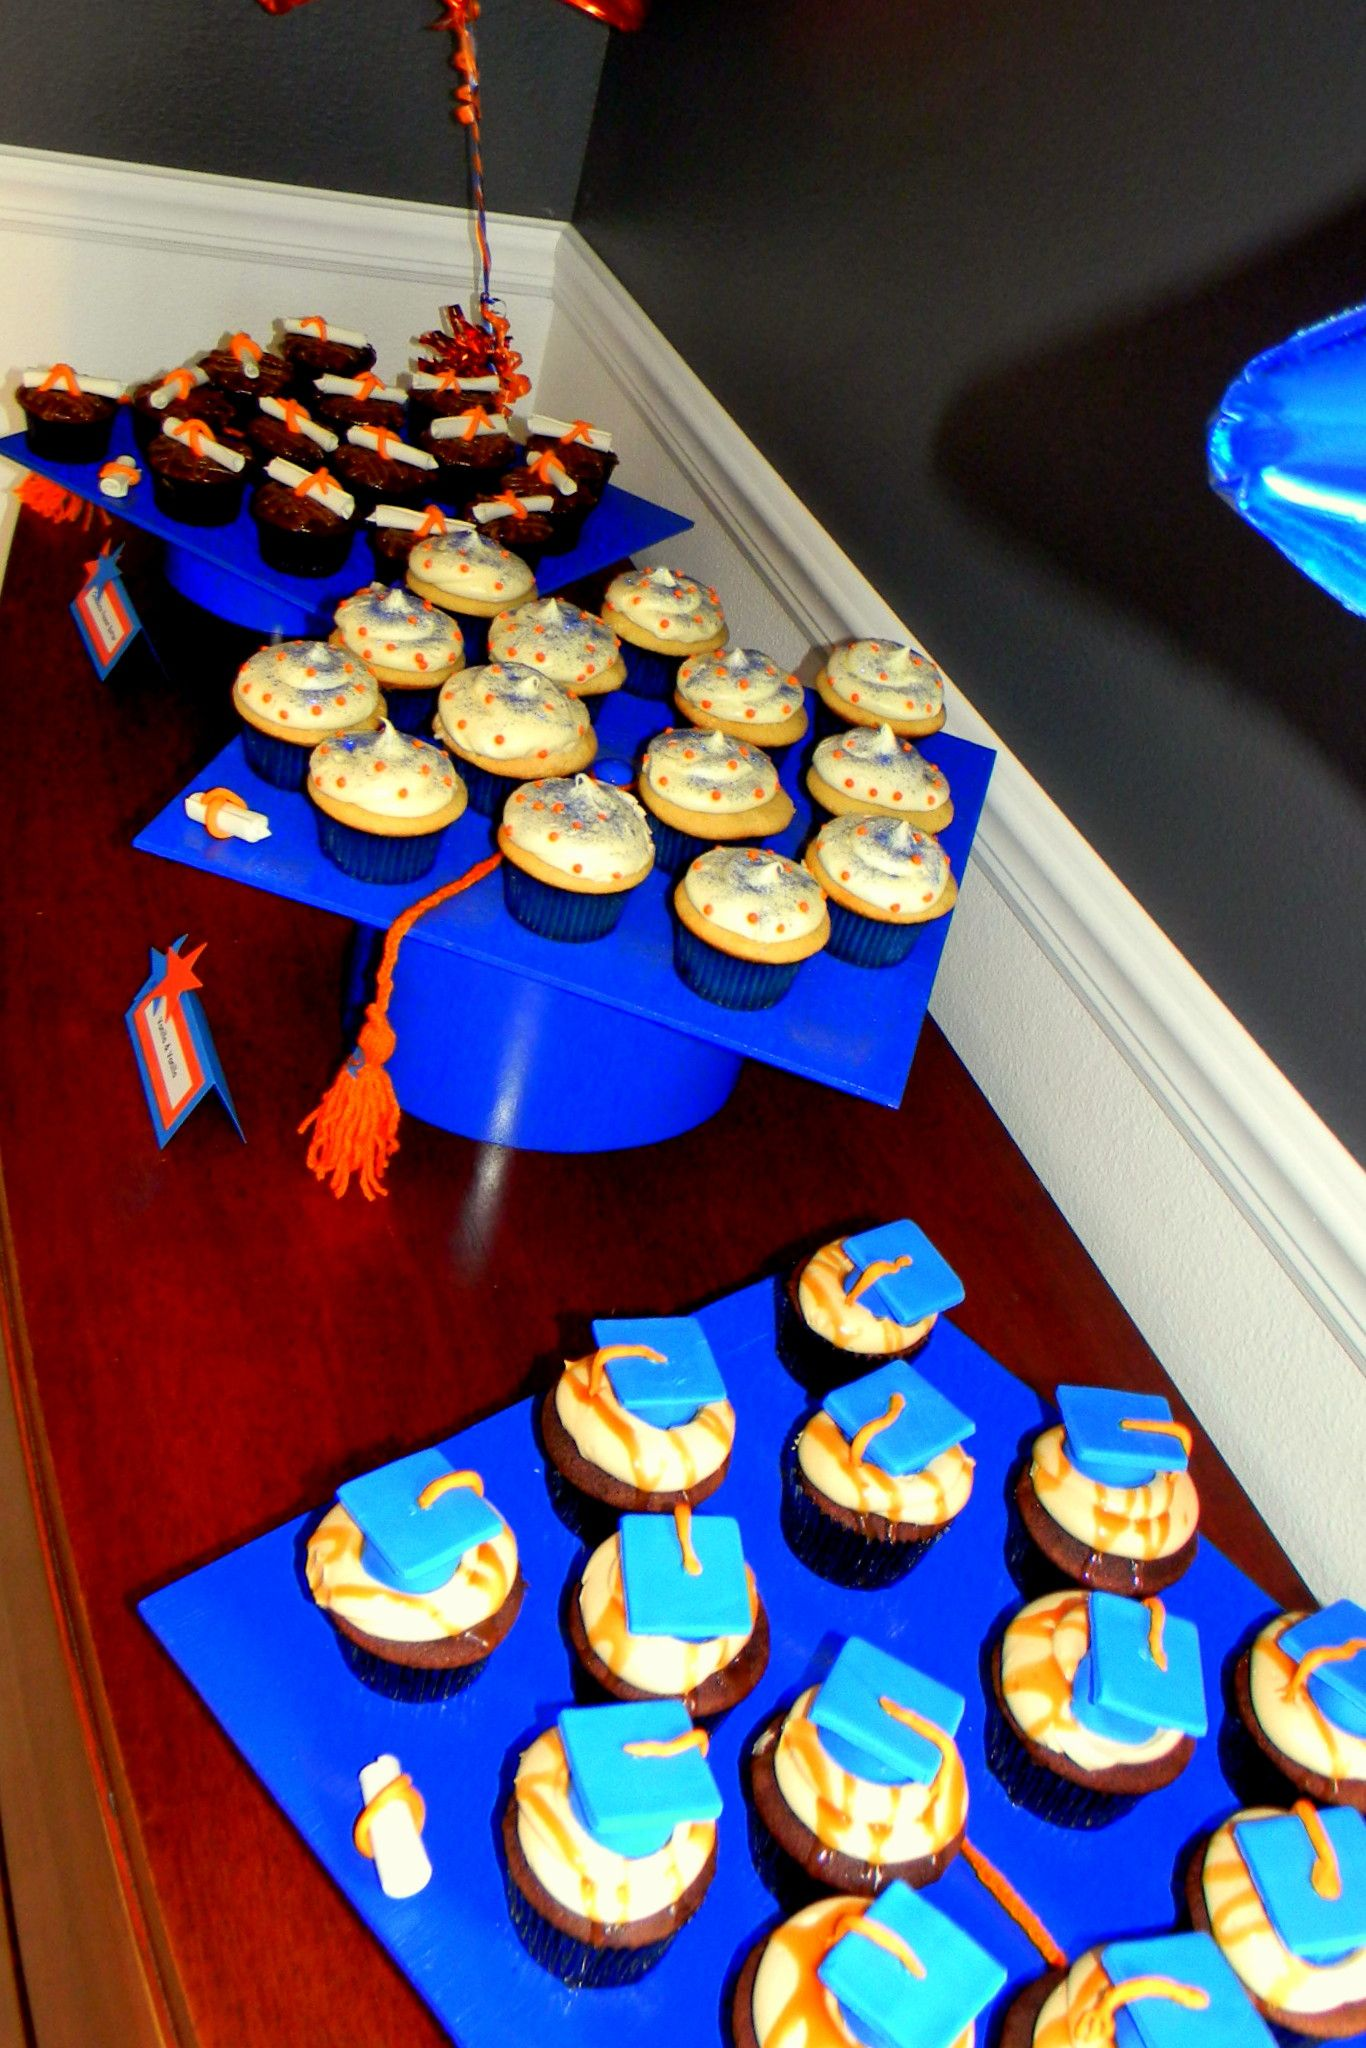 Cupcake Decorating Ideas Graduation Party : Graduation Cap Cupcake Display www.sweetycakes.org ...